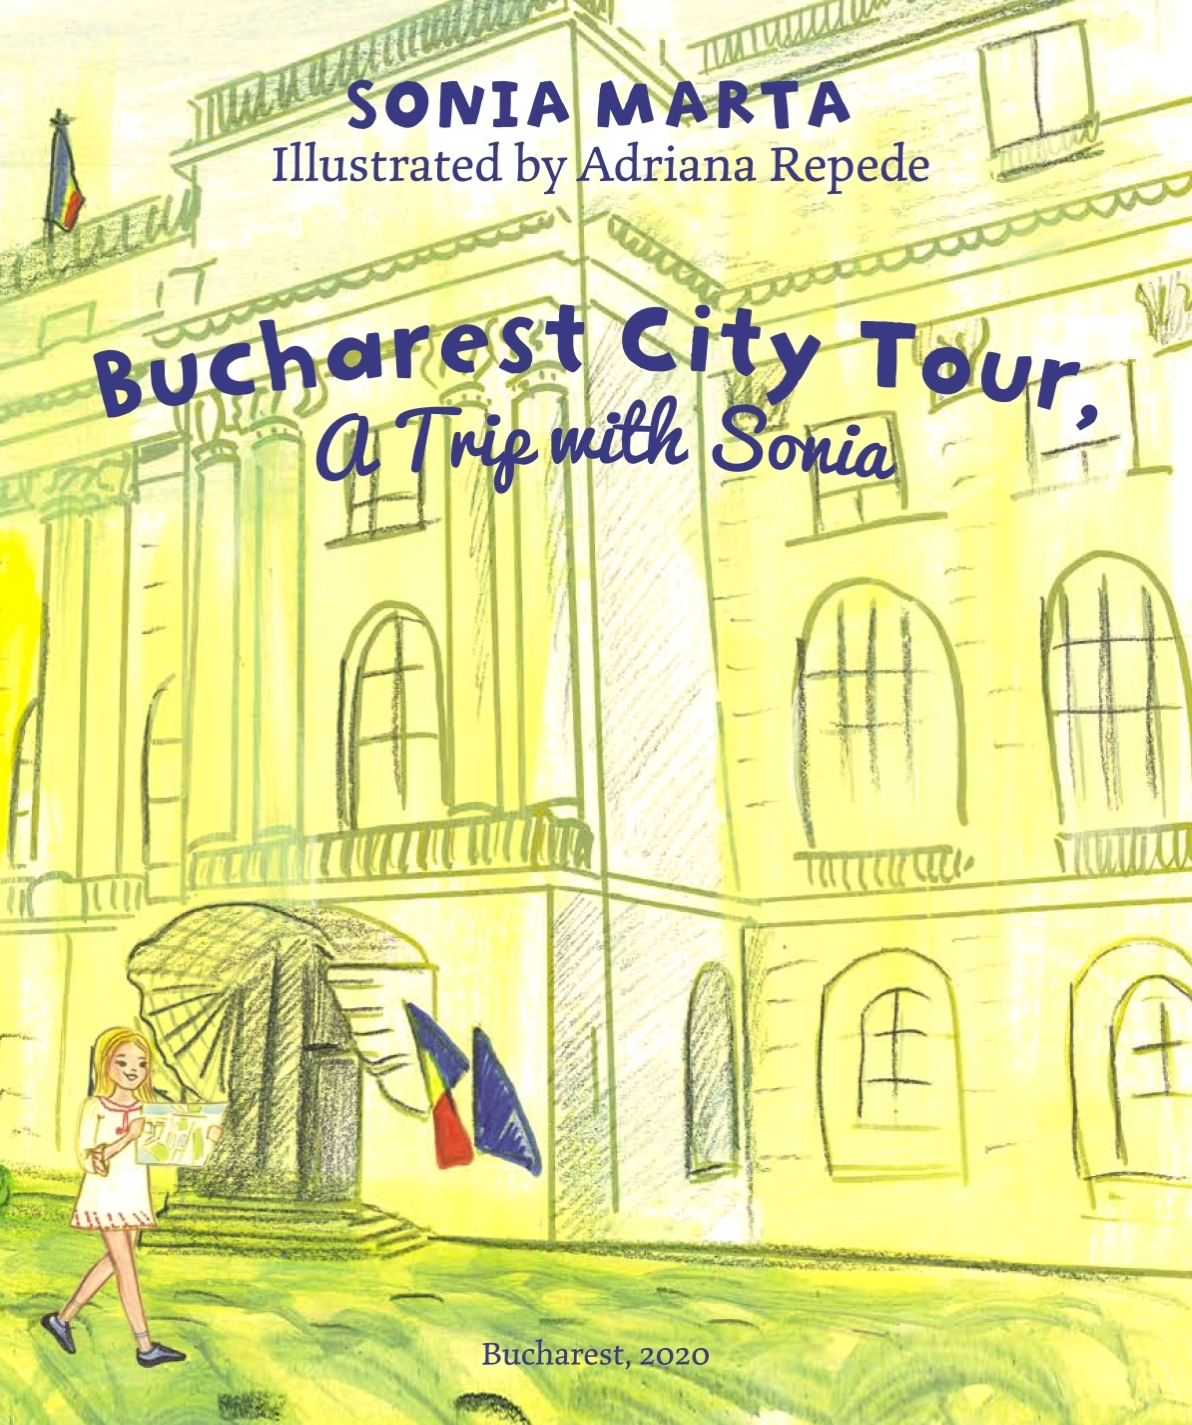 """Sonia Marta is Releasing """"Bucharest City Tour, a Trip with Sonia"""" Book That Supports Vulnerable Communities During COVID-19 Pandemic"""